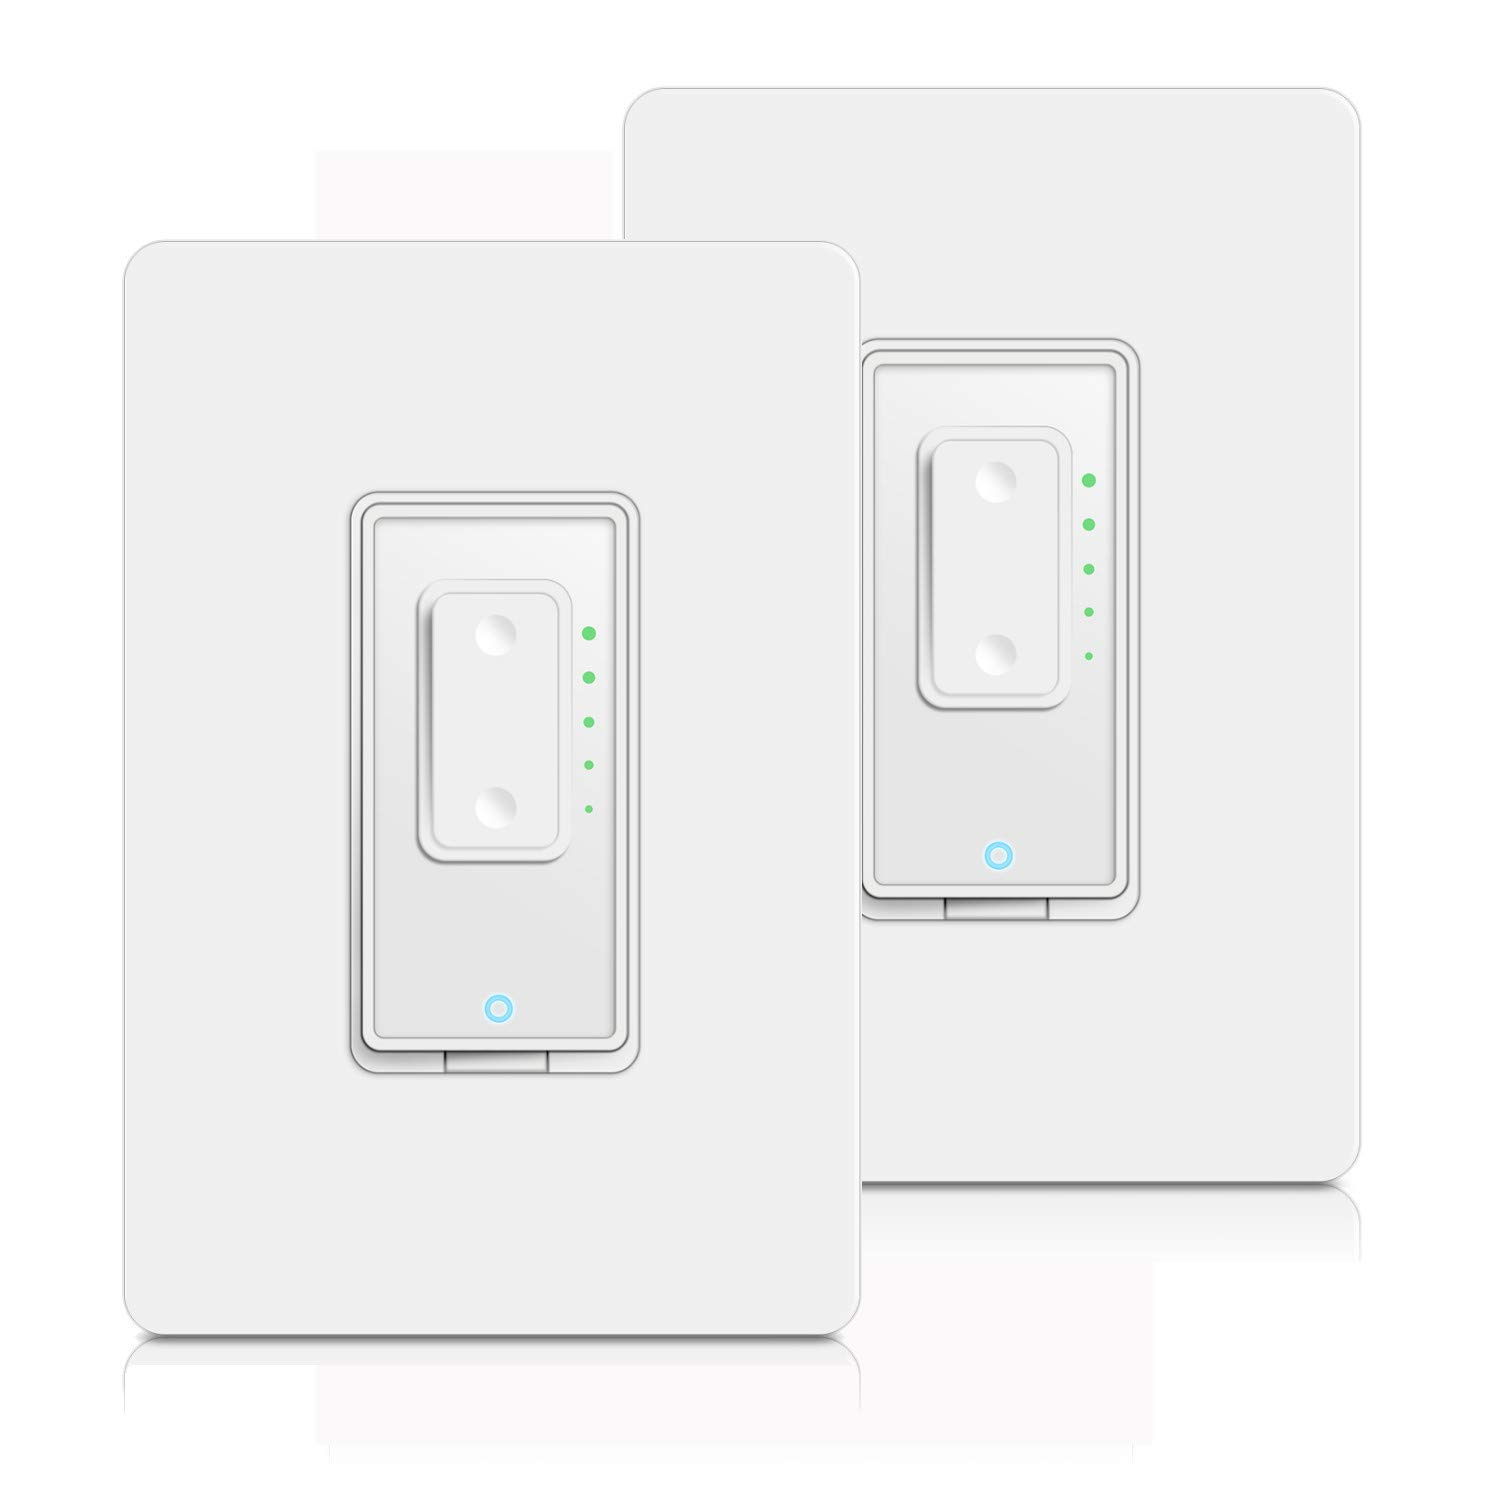 Smart Dimmer Switch by Martin Jerry | SmartLife App, Mains Dimming ONLY, Compatible with Alexa as WiFi Light Switch Dimmer, Single Pole, Works with Google Assistant [2Pack]